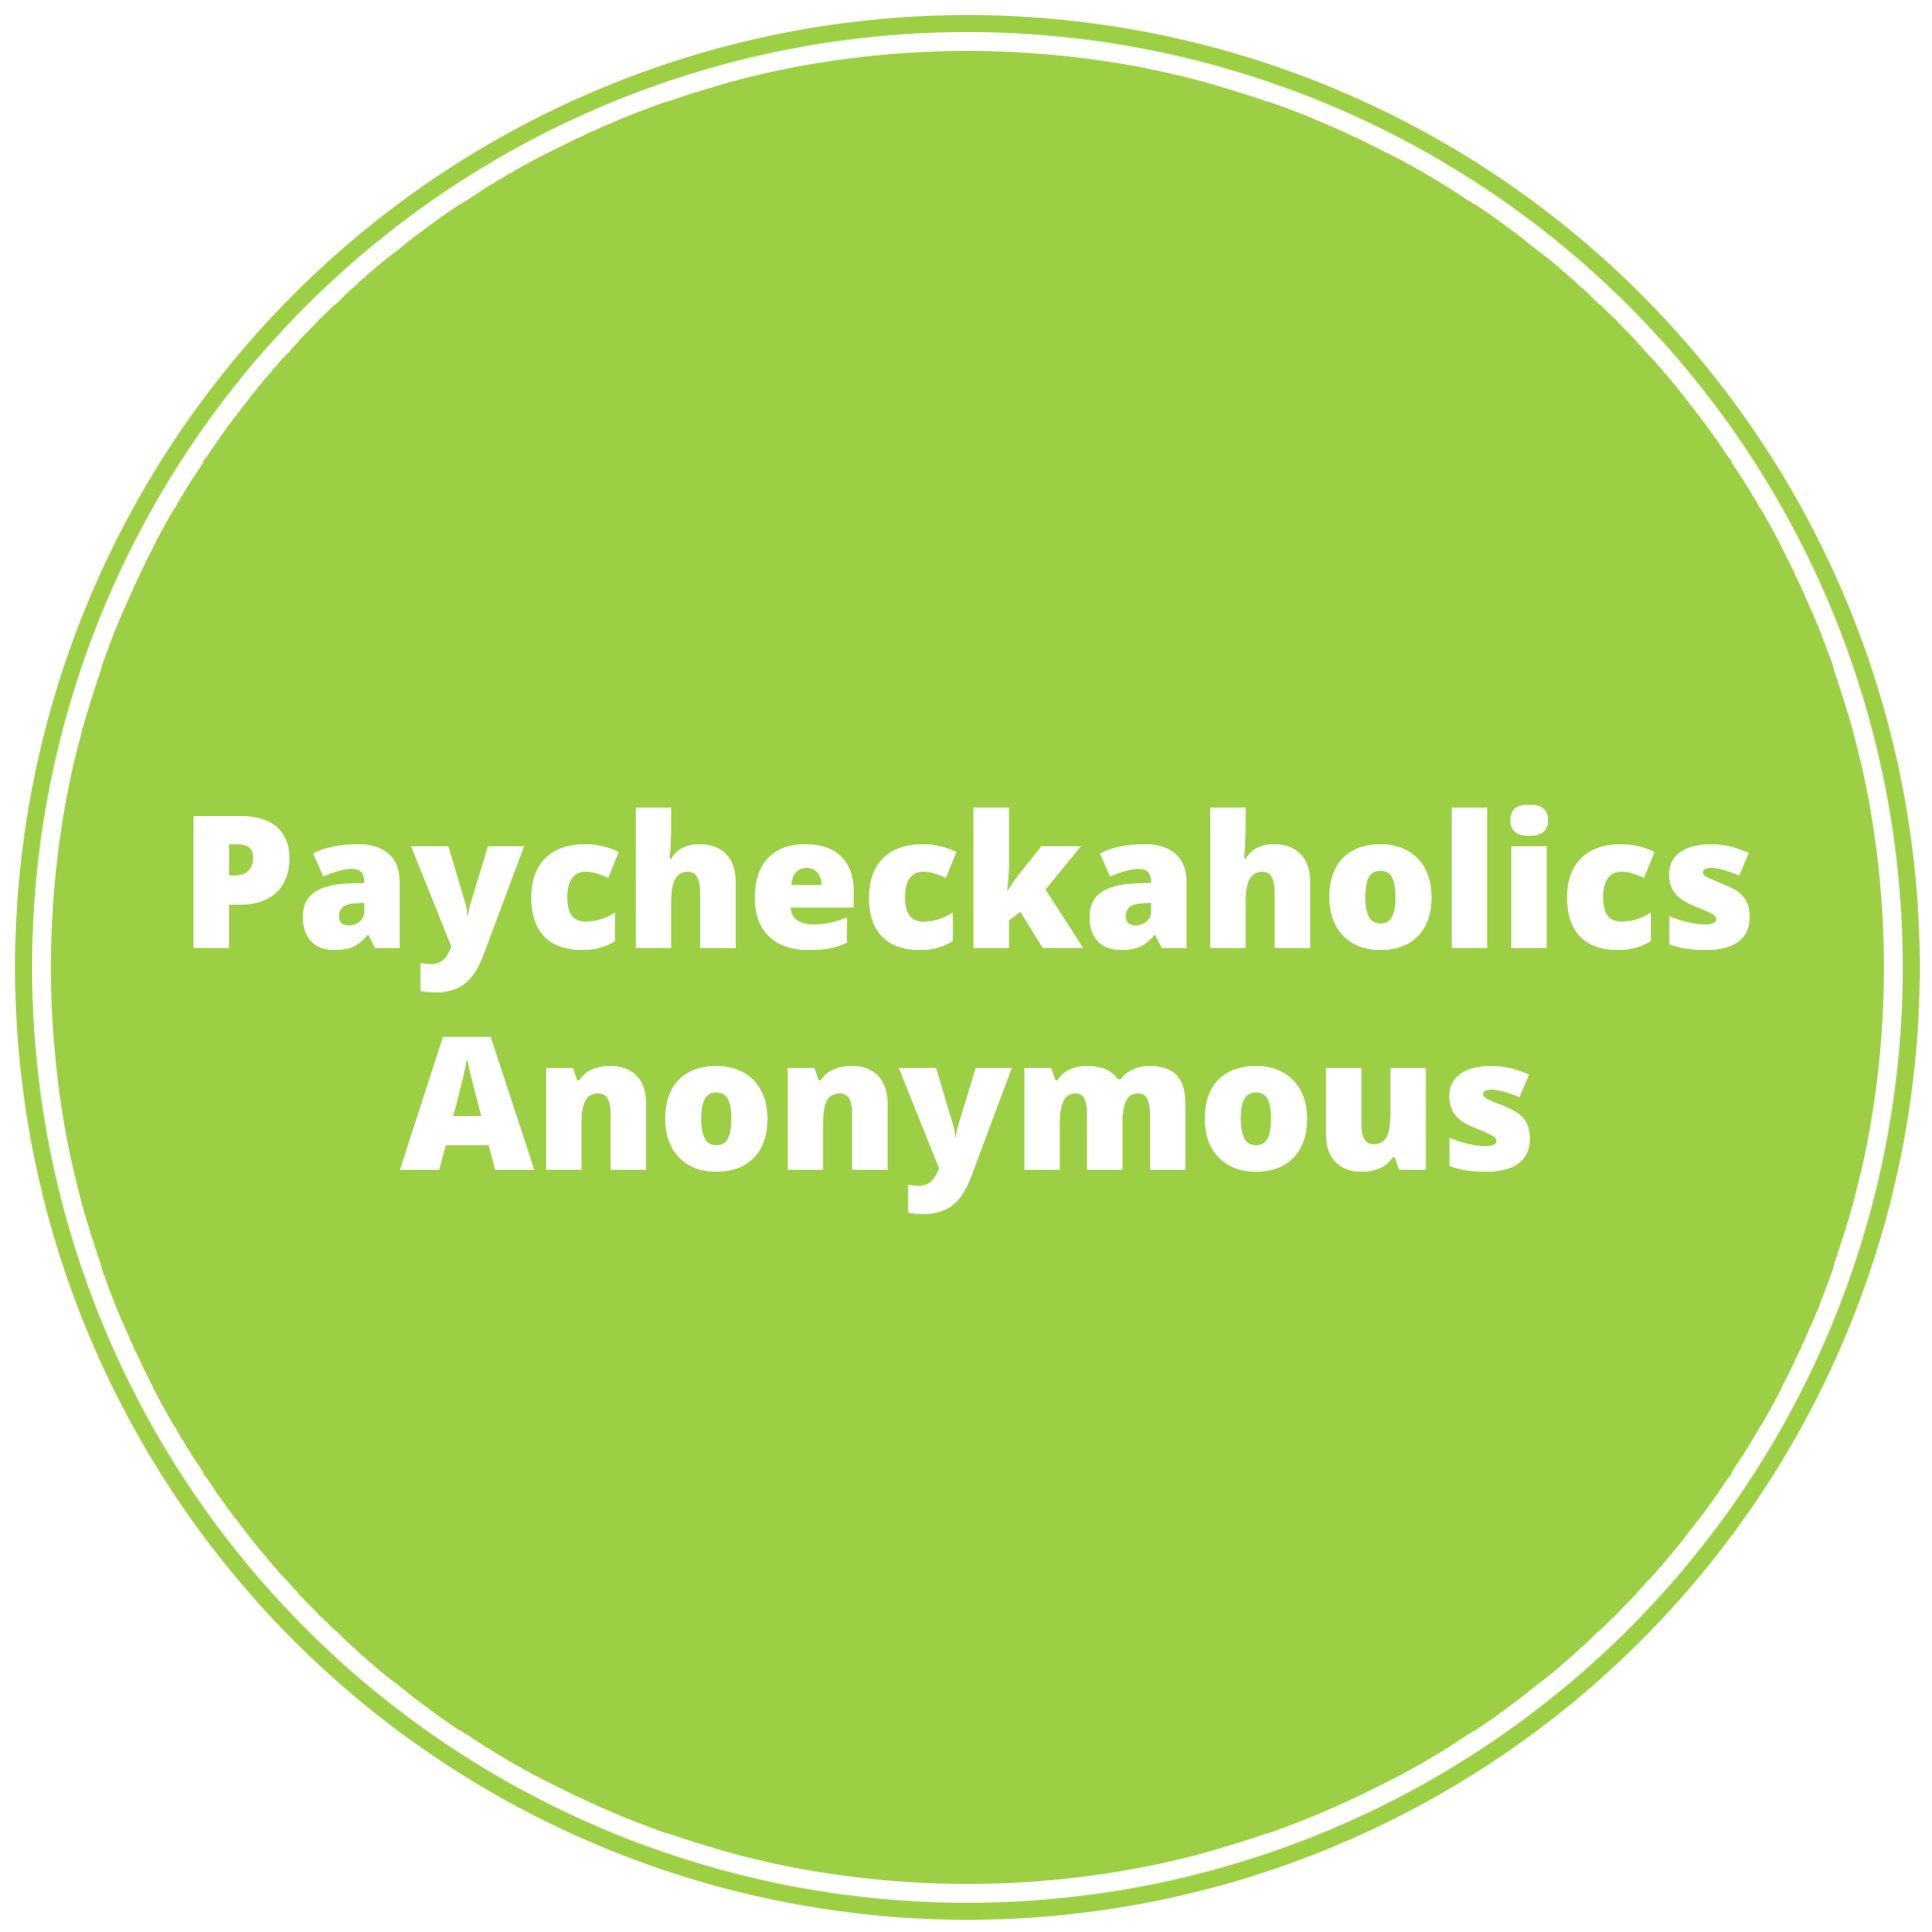 The Paycheckaholics Anonymous Show